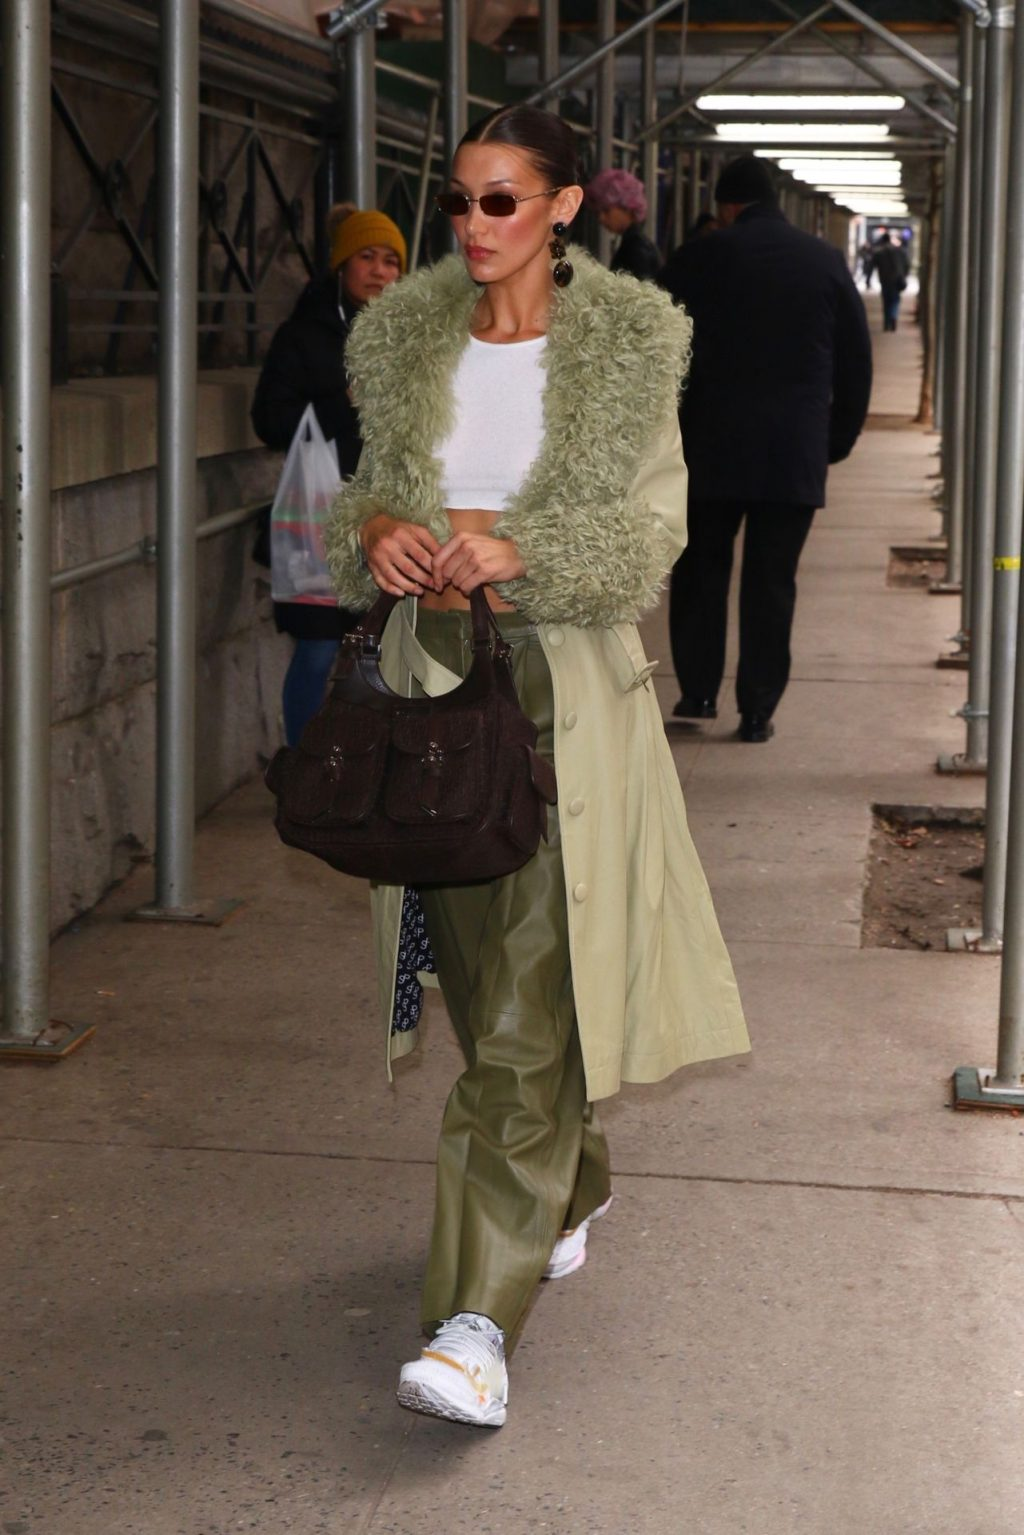 Bella Hadid See through The Fappening Blog 52 1024x1535 - Braless Bella Hadid Arrives at the Park Avenue Armory for the Marc Jacobs Fashion Show (59 Photos)